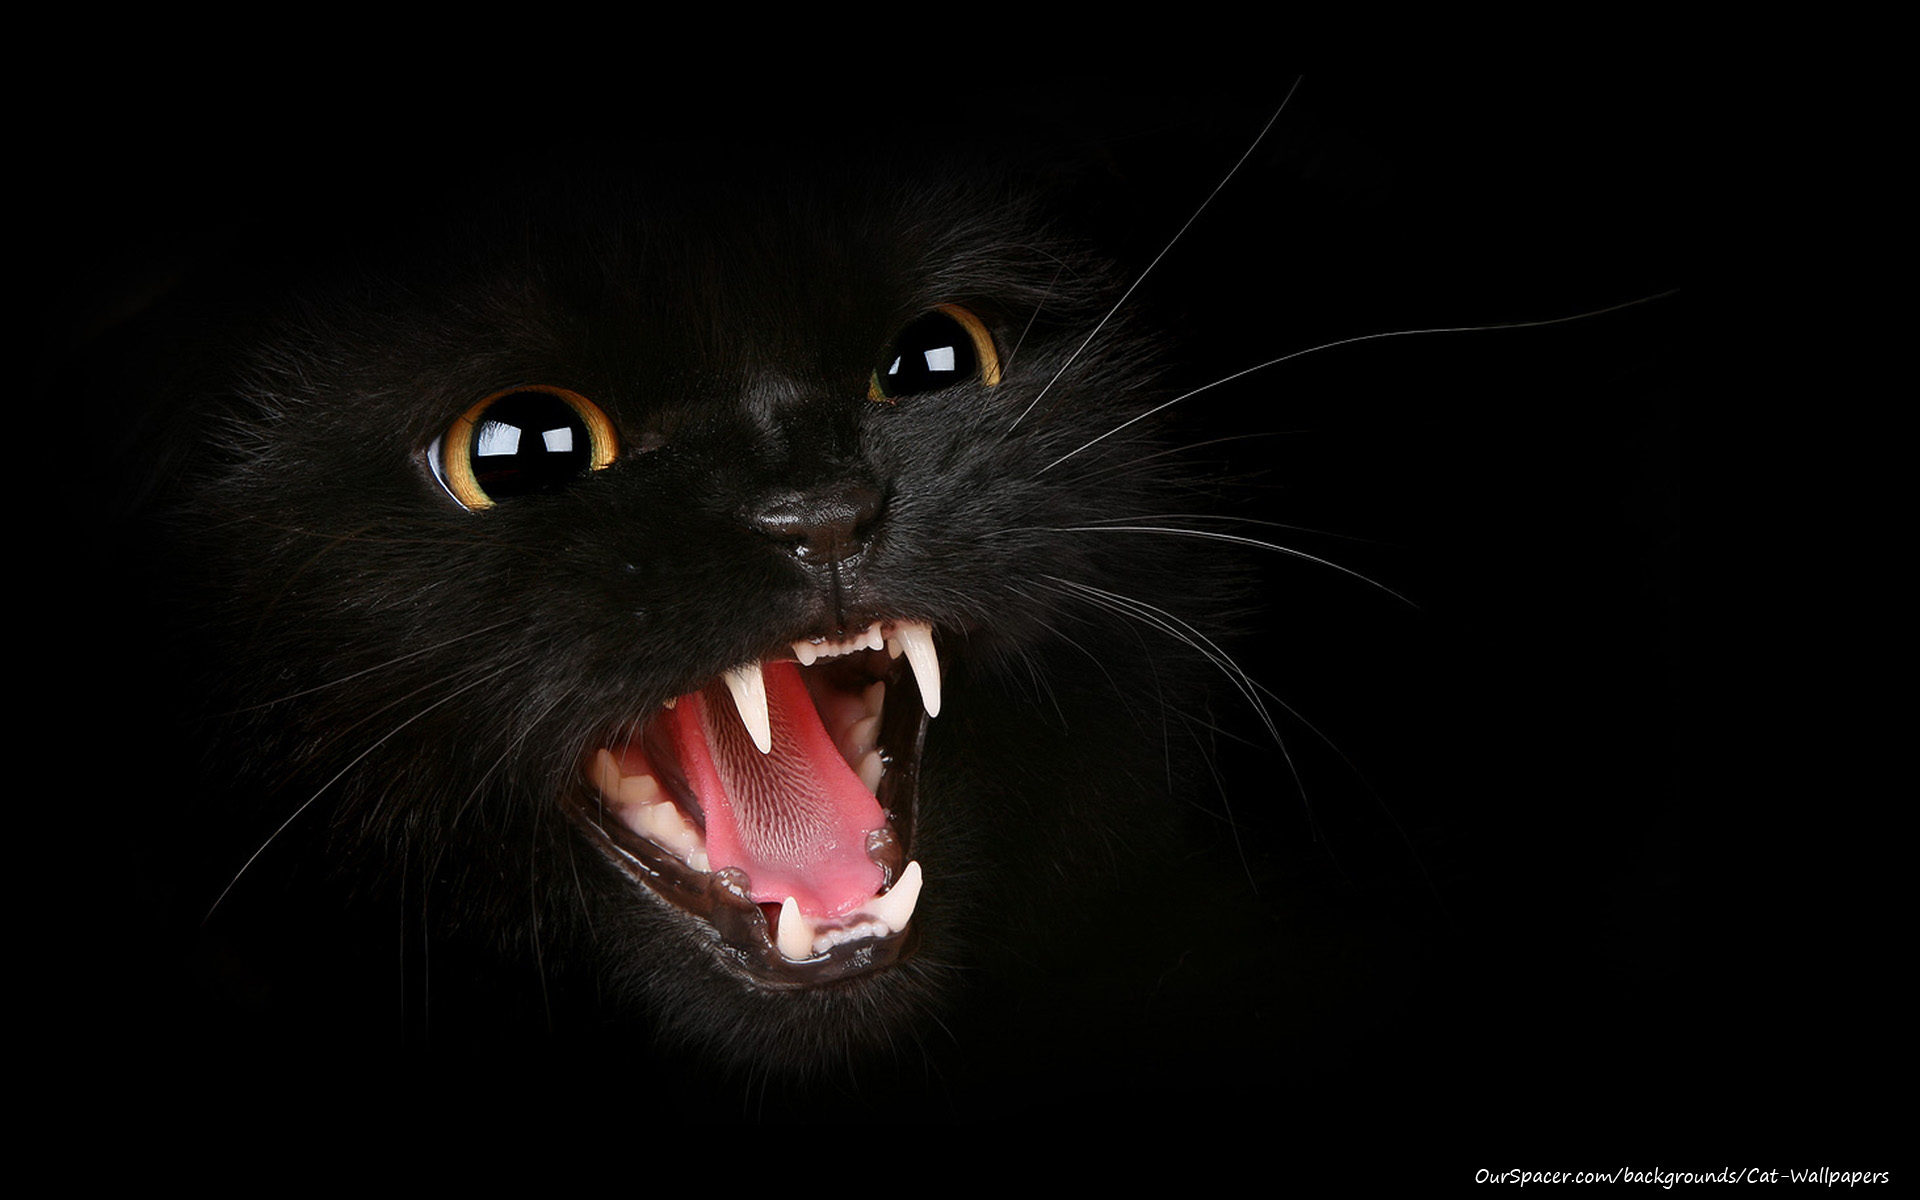 Black cat hissing wallpapers for myspace, twitter, and hi5 backgrounds